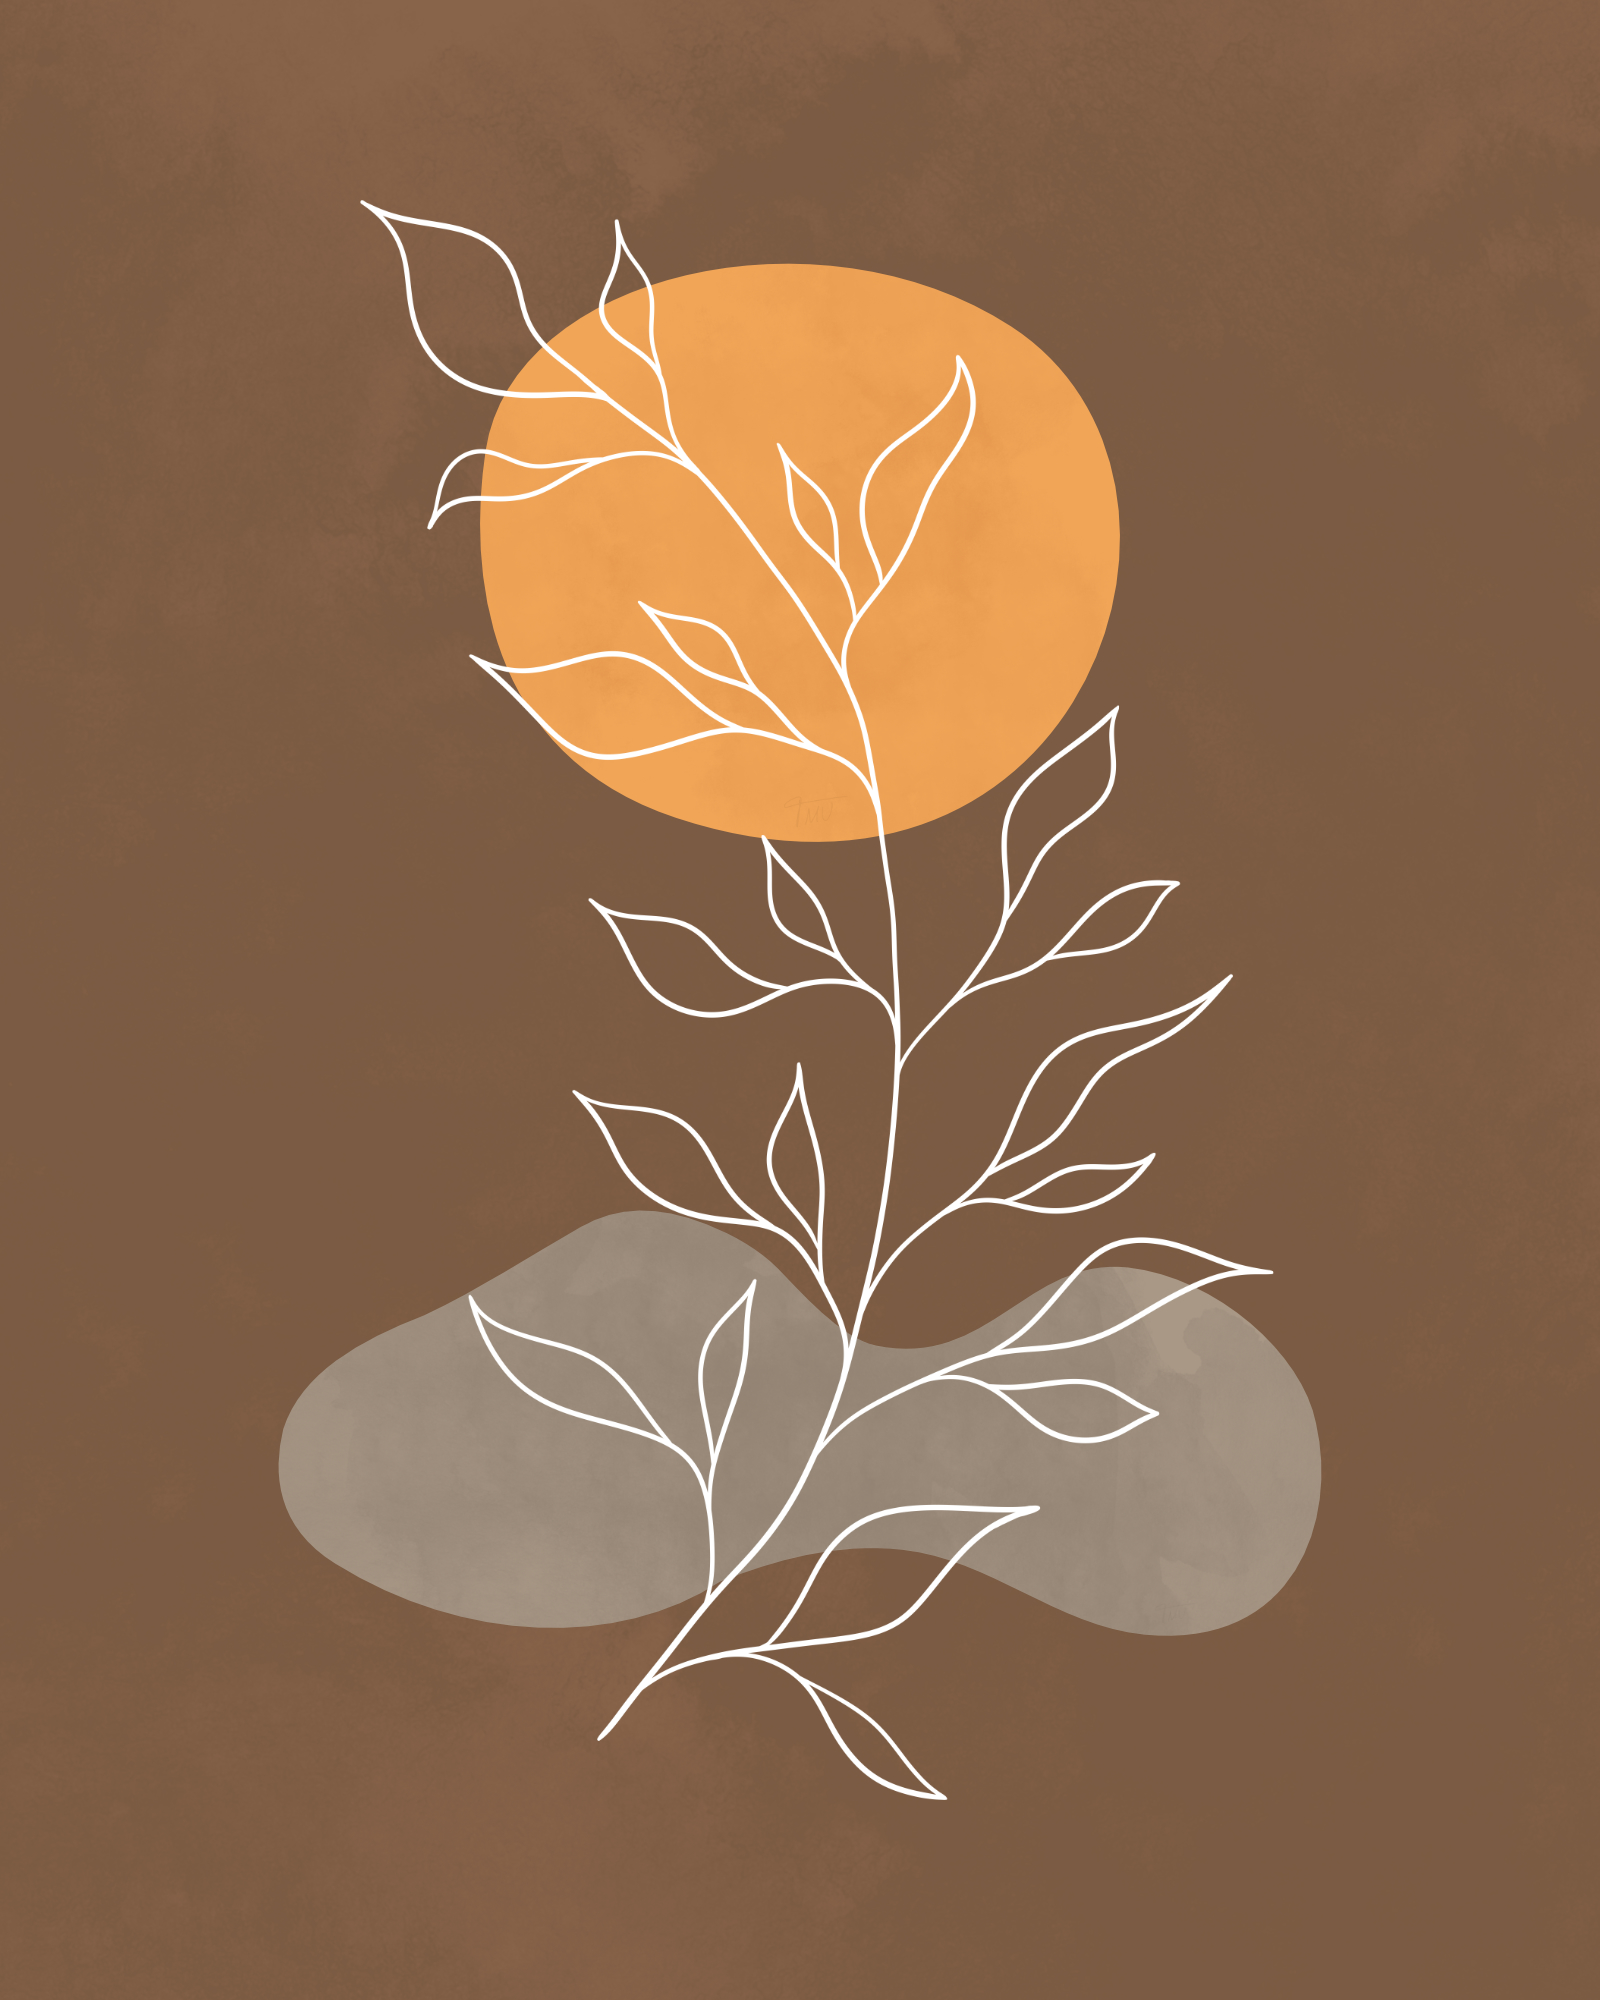 Minimalist lines and shapes landscape in autumn colors, abstract landscape art with a leafy plant 8